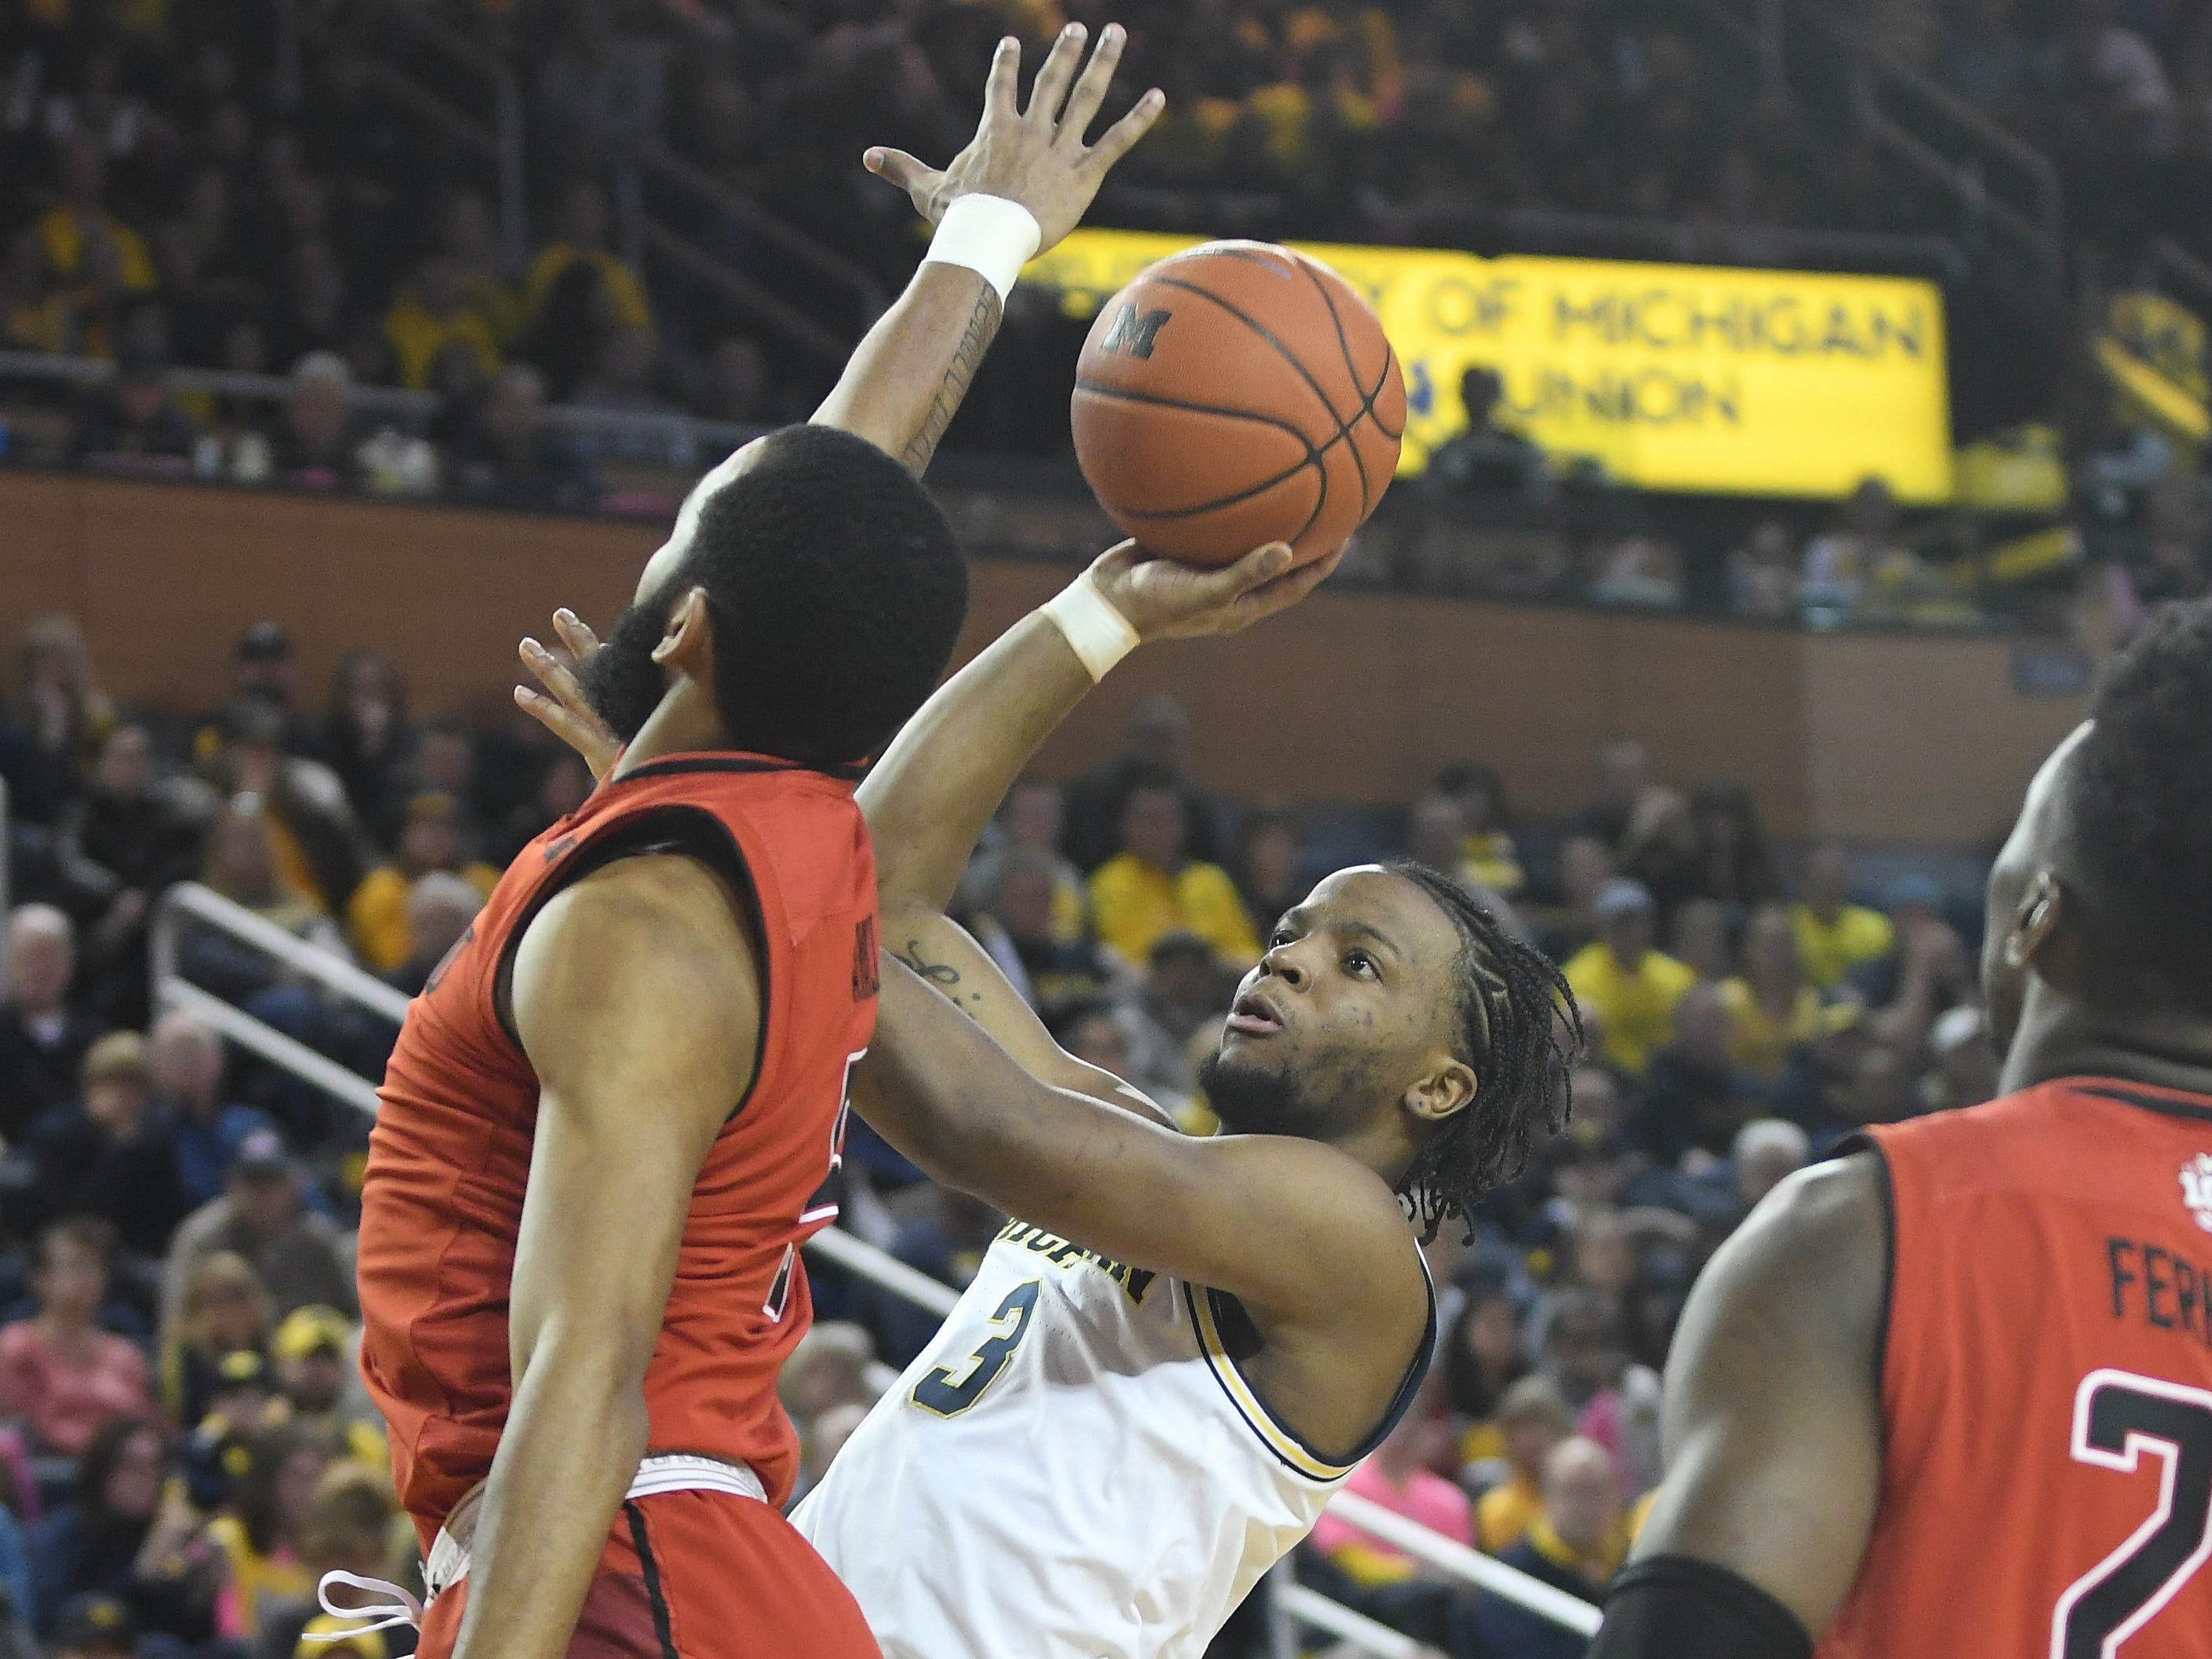 Michigan's Zavier Simpson puts up a shot against Maryland's Anthony Cowan Jr. in the second half.